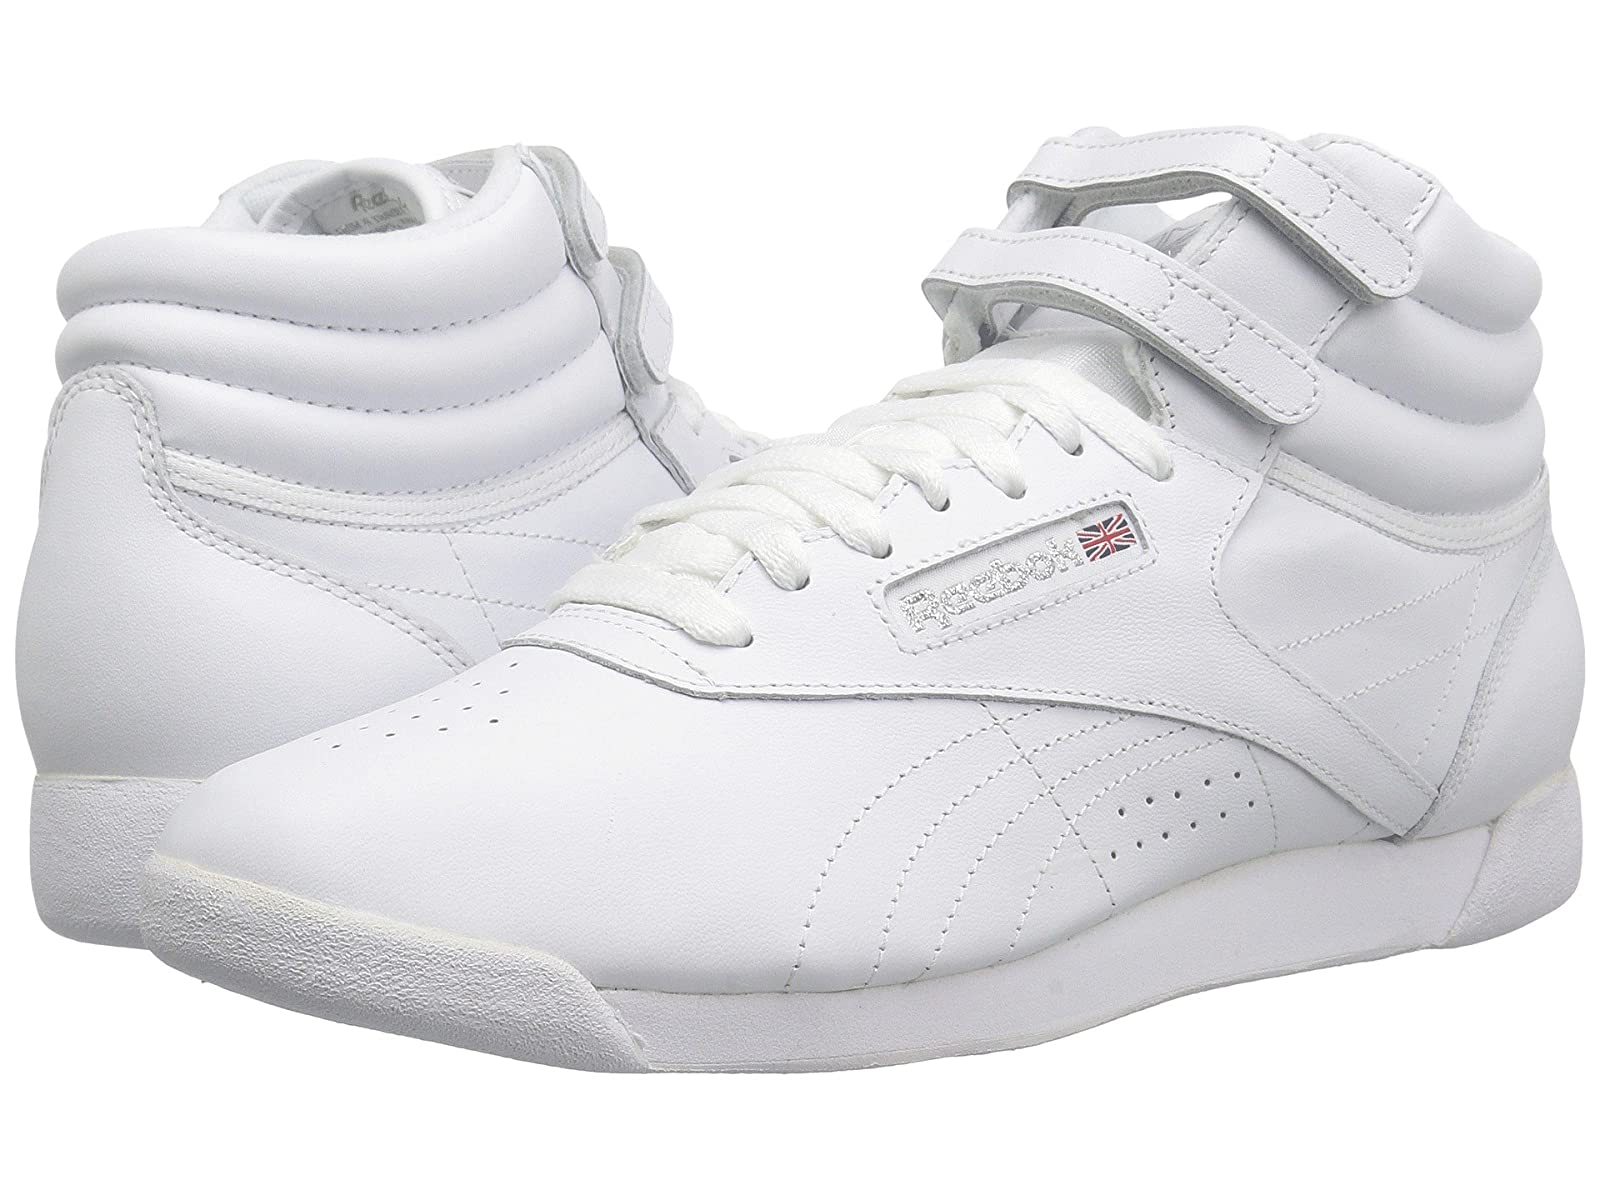 Reebok Lifestyle Freestyle HiAtmospheric grades have affordable shoes